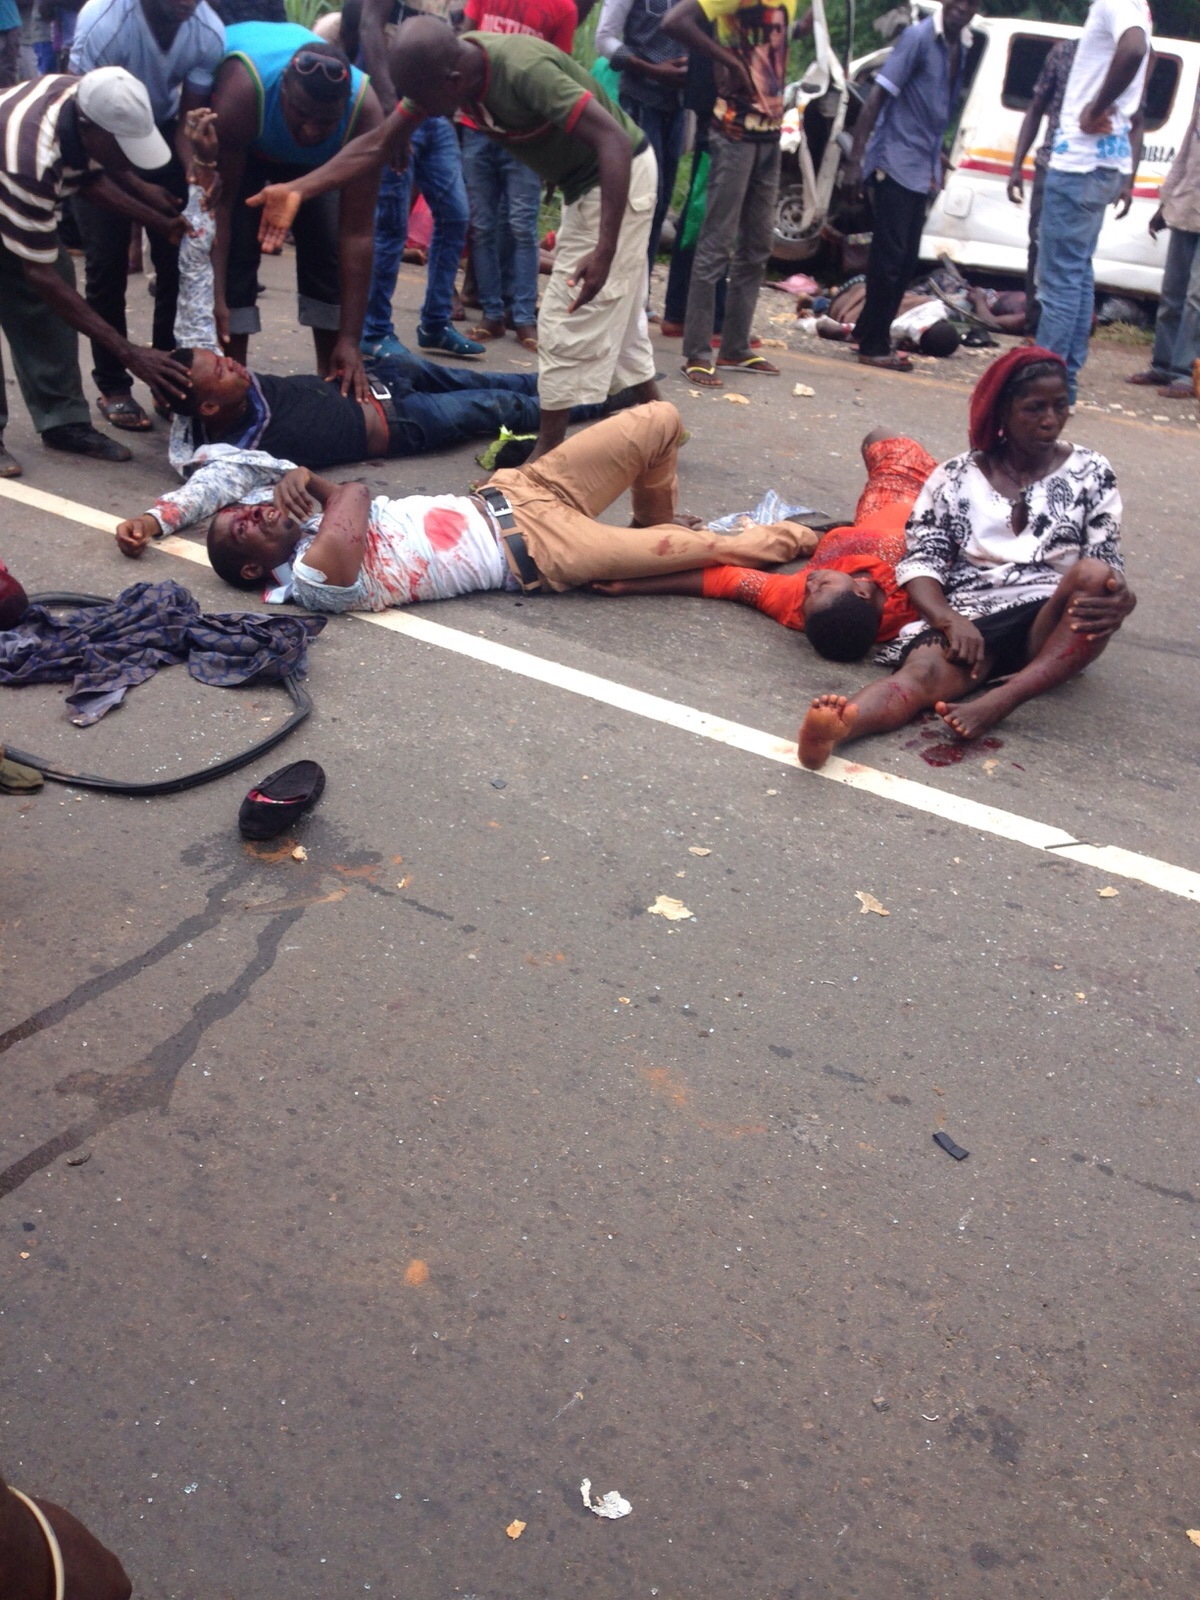 motorcycle accident Gruesome